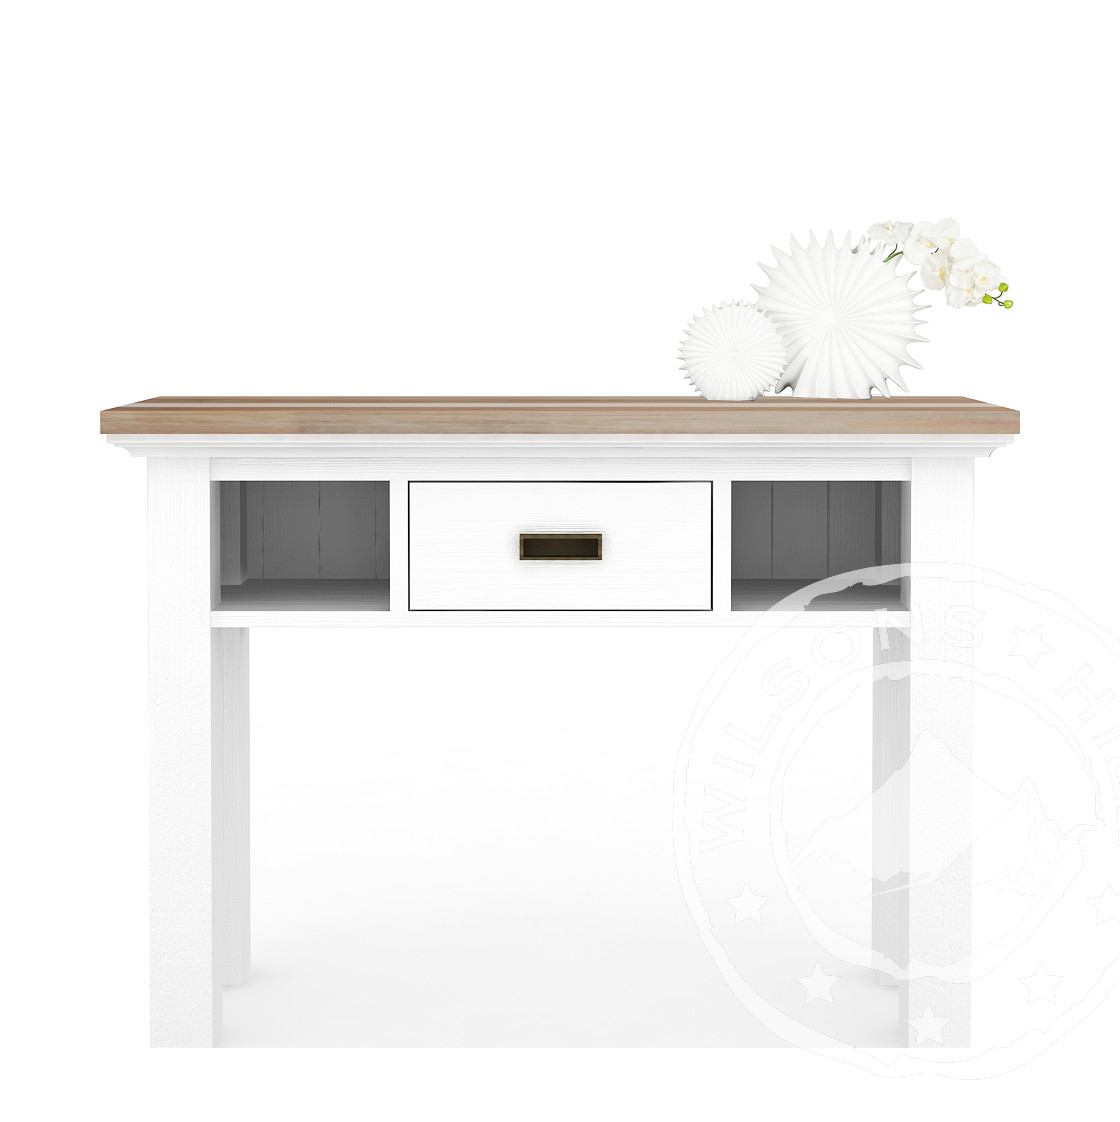 Brighton (Side table 1drw, 2 niches)